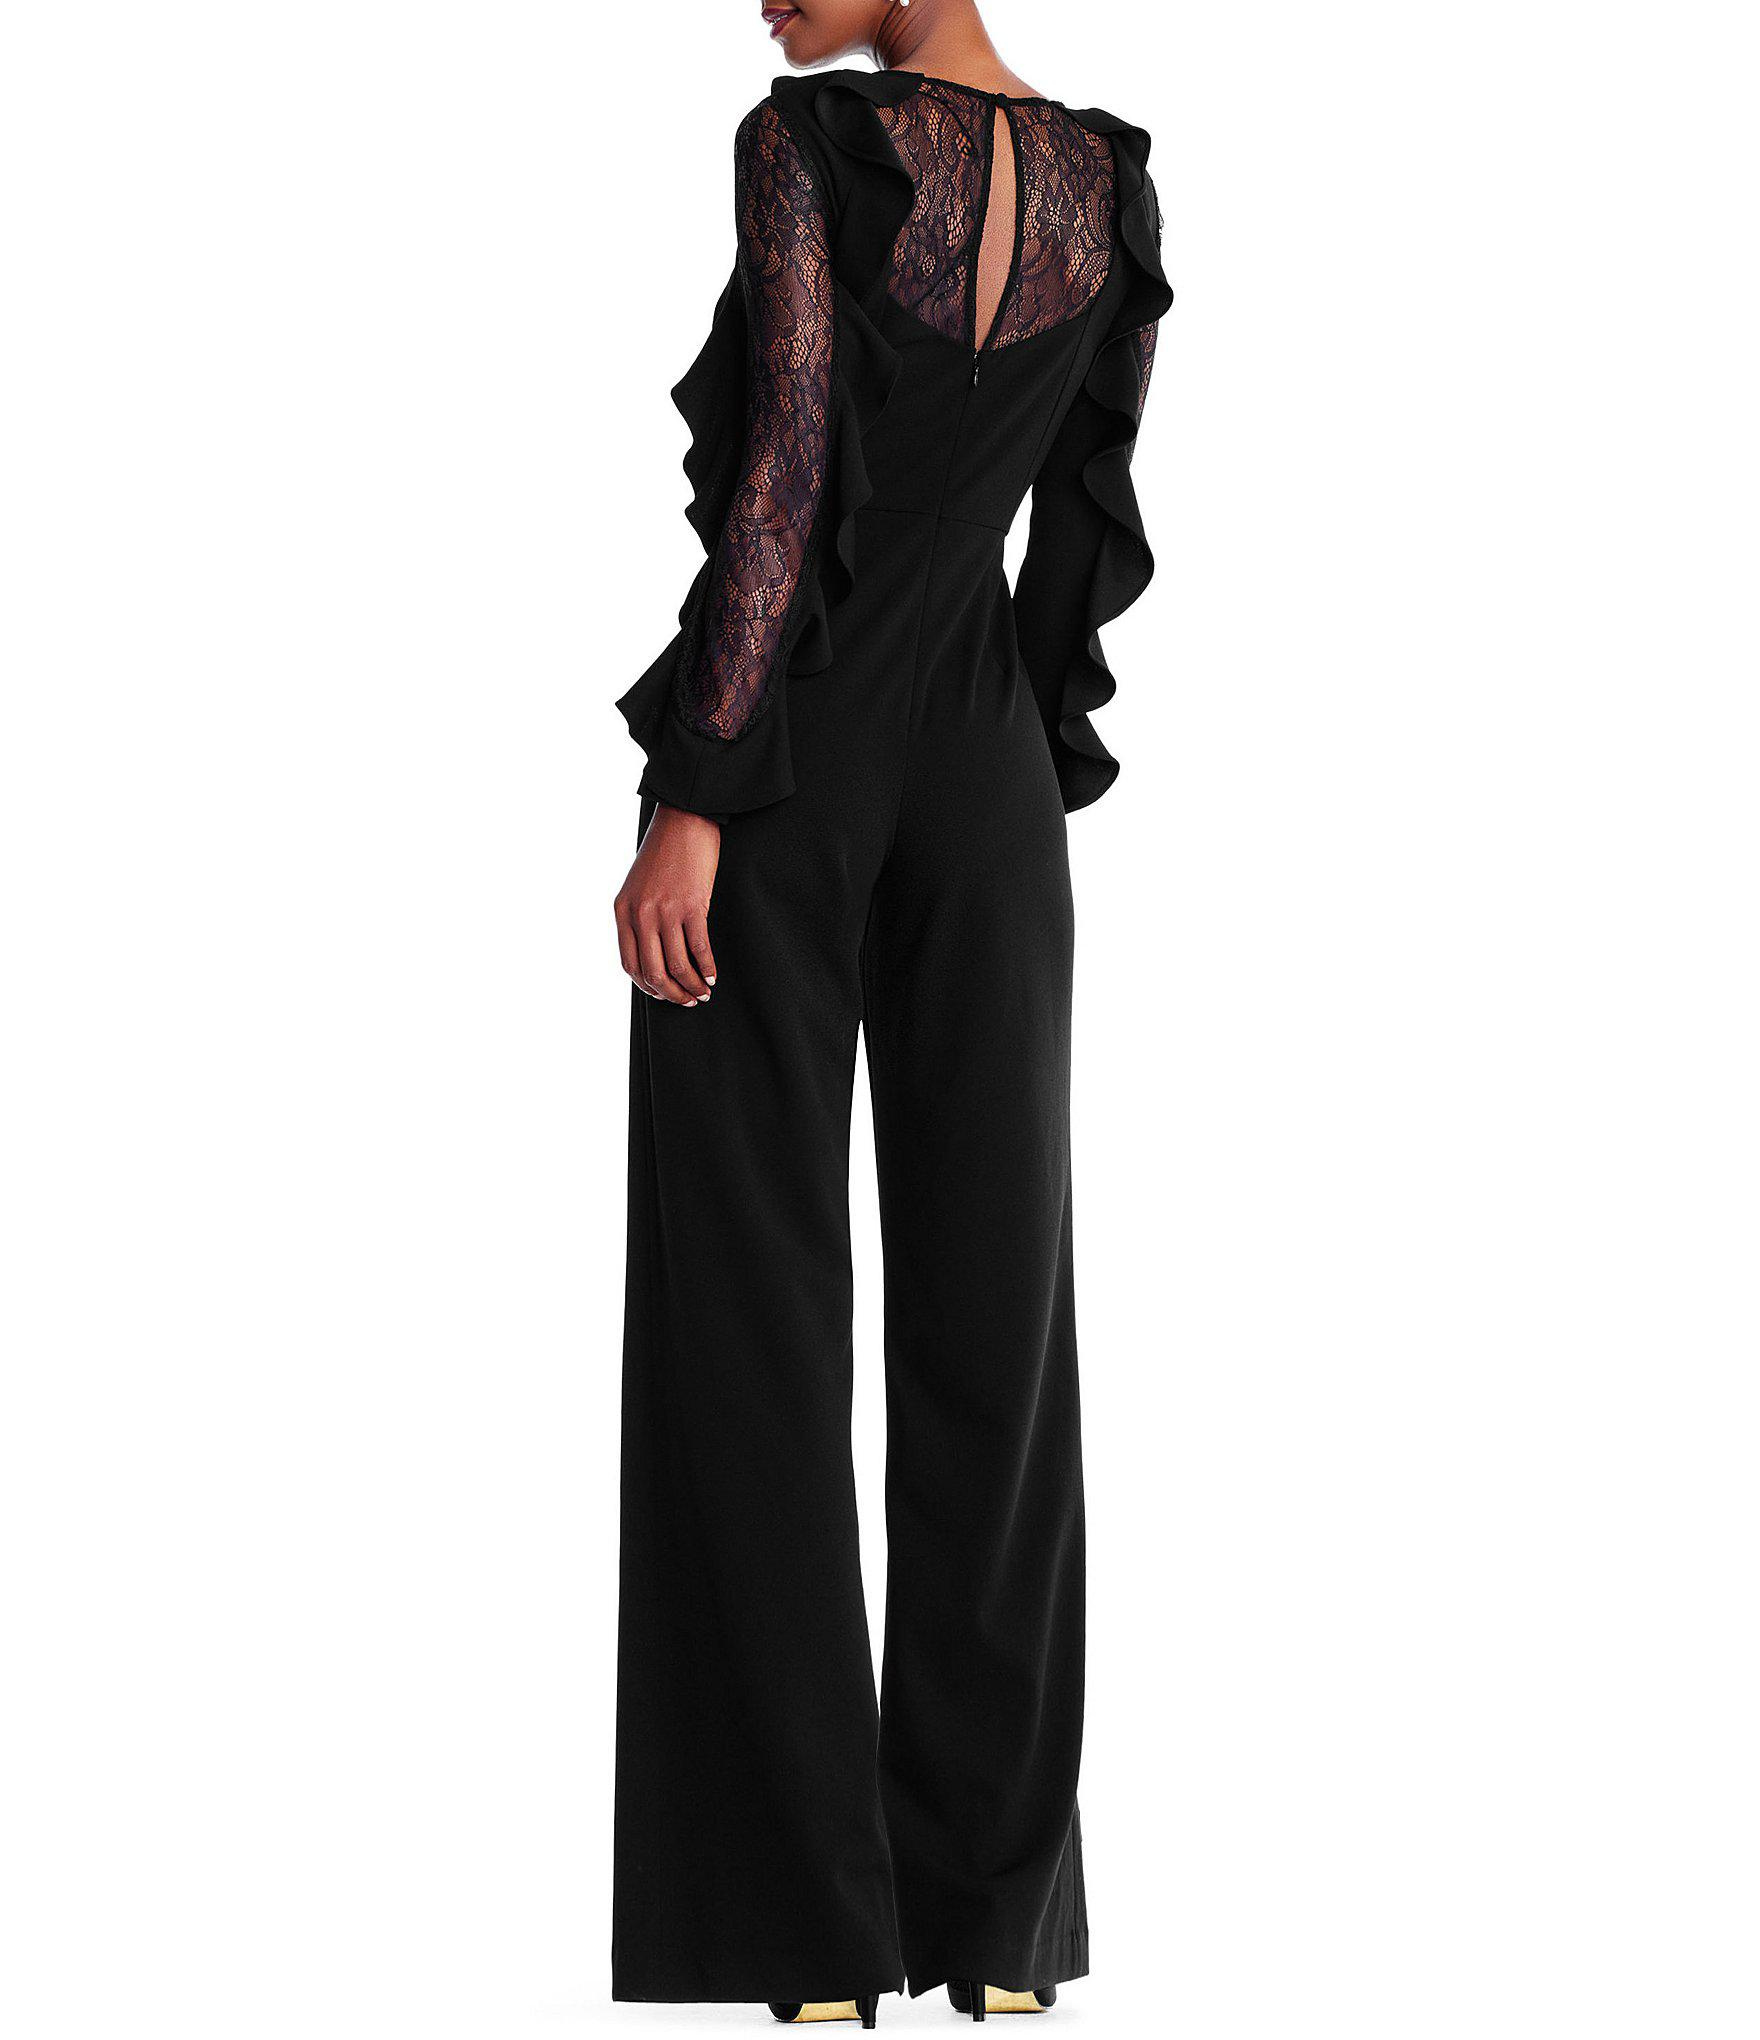 ec1655192dc Adrianna Papell - Black Ruffled Sleeve Jumpsuit - Lyst. View fullscreen